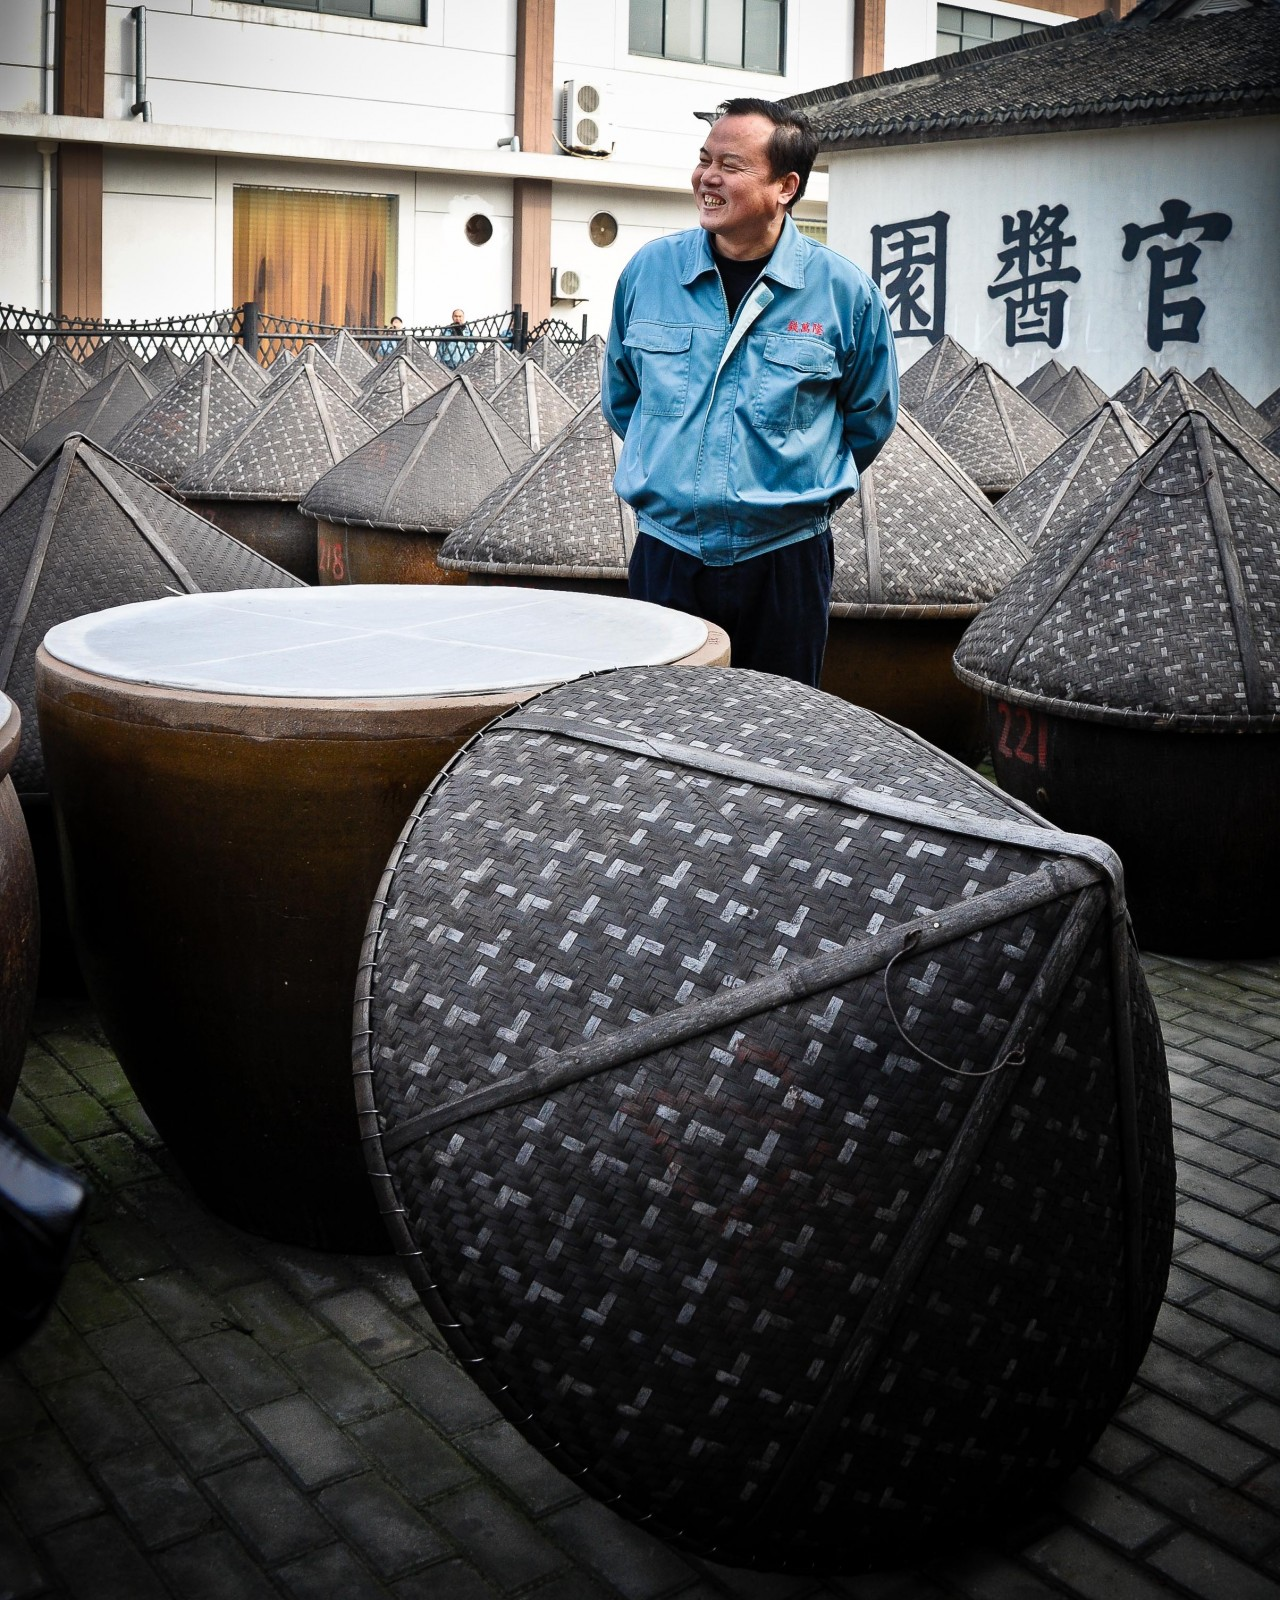 Vats for making soy sauce